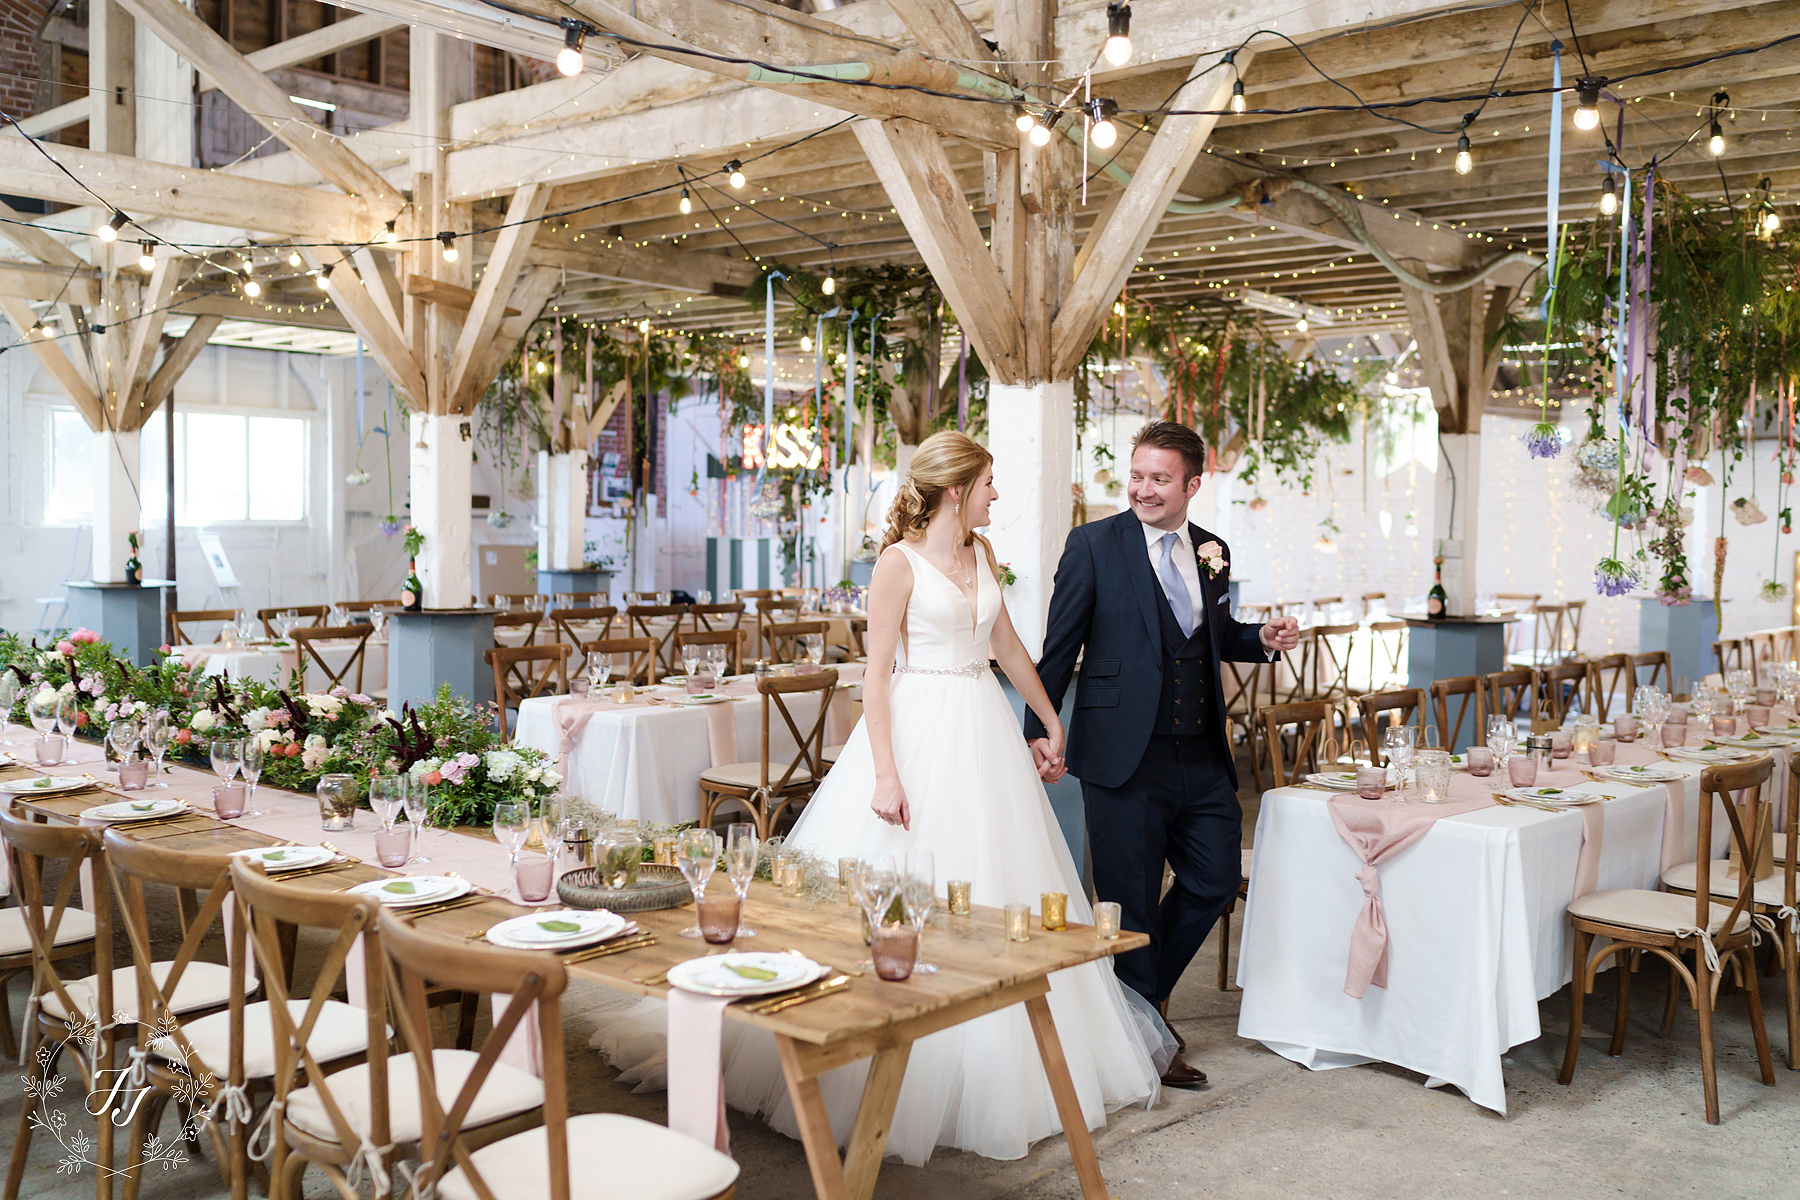 beautiful wedding photography at the railway barn in essex Newhall vineyard